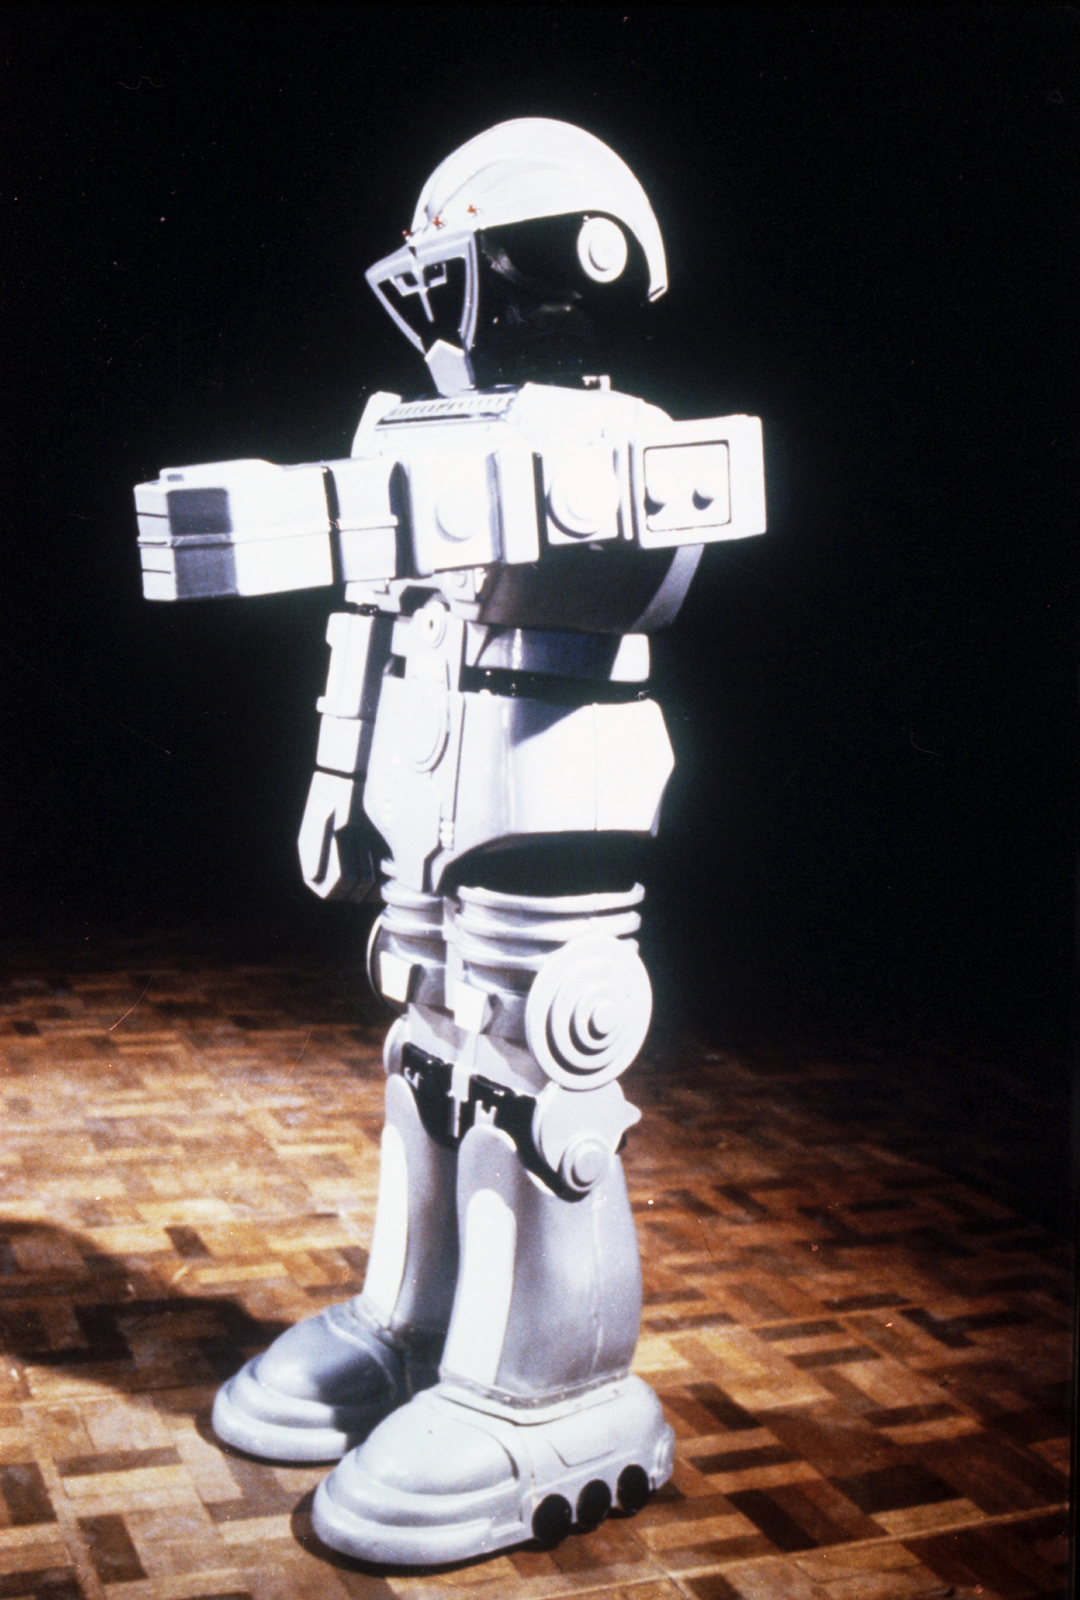 Very successful film prop…. - The clockwork robot was real success lasting to the end of the production without a hitch.